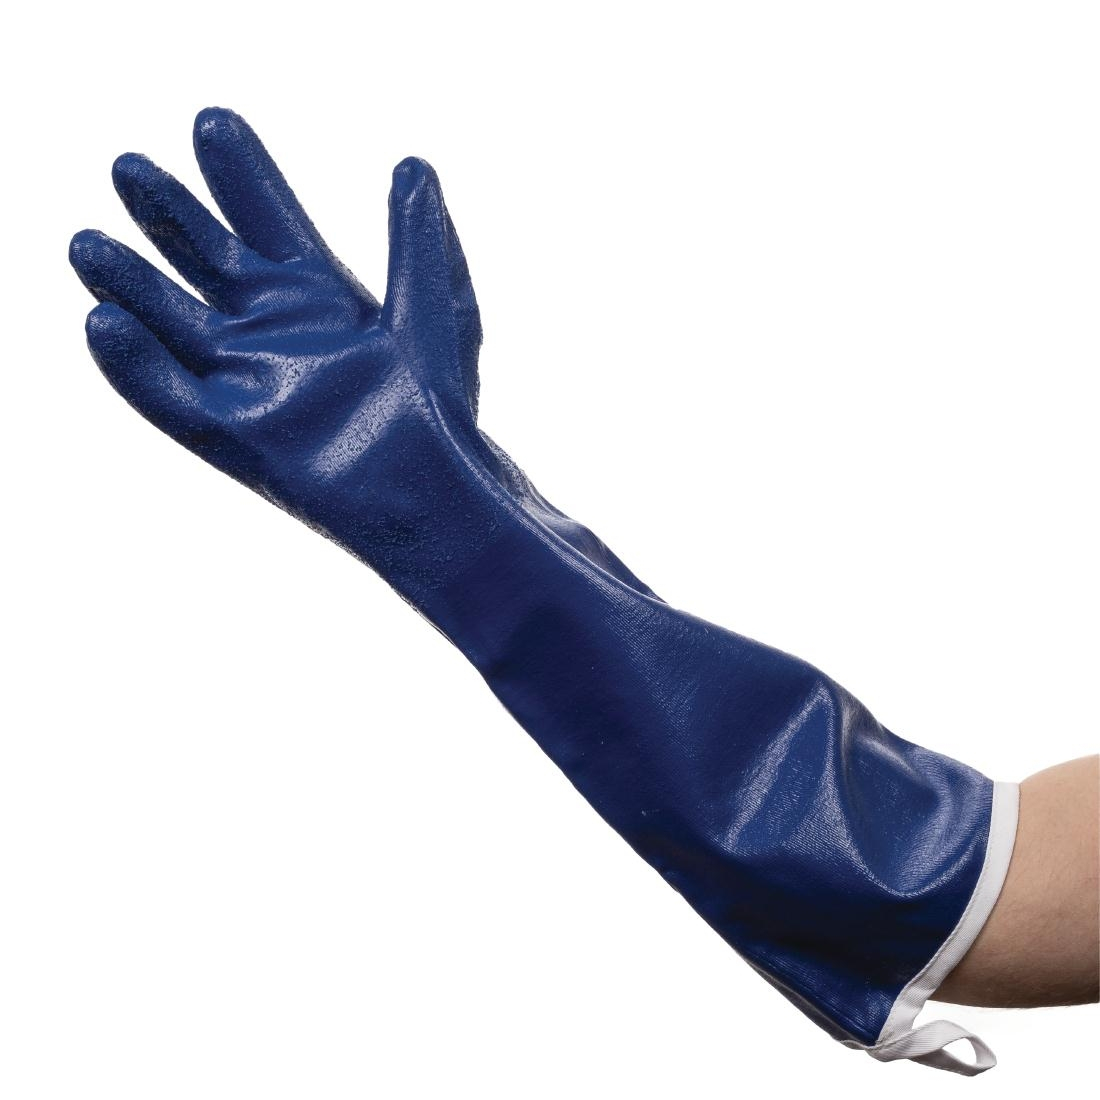 Burnguard SteamGuard Cleaning Glove